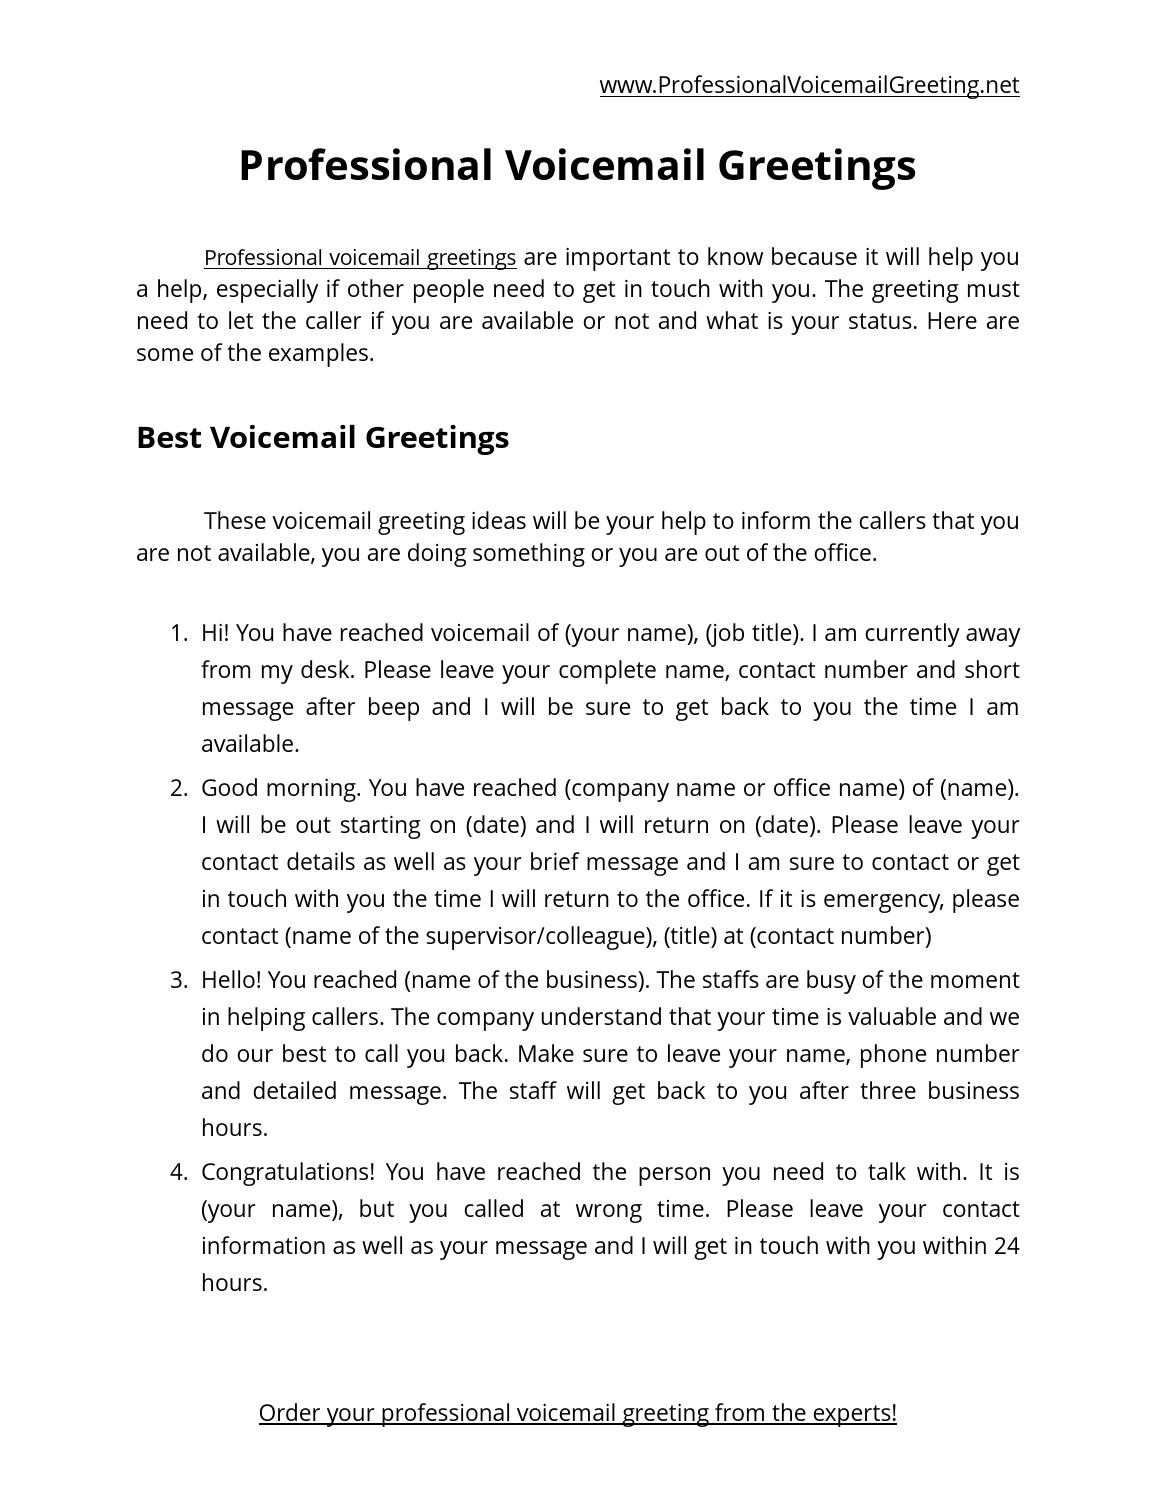 50 professional voicemail greetings by voice mail issuu kristyandbryce Images